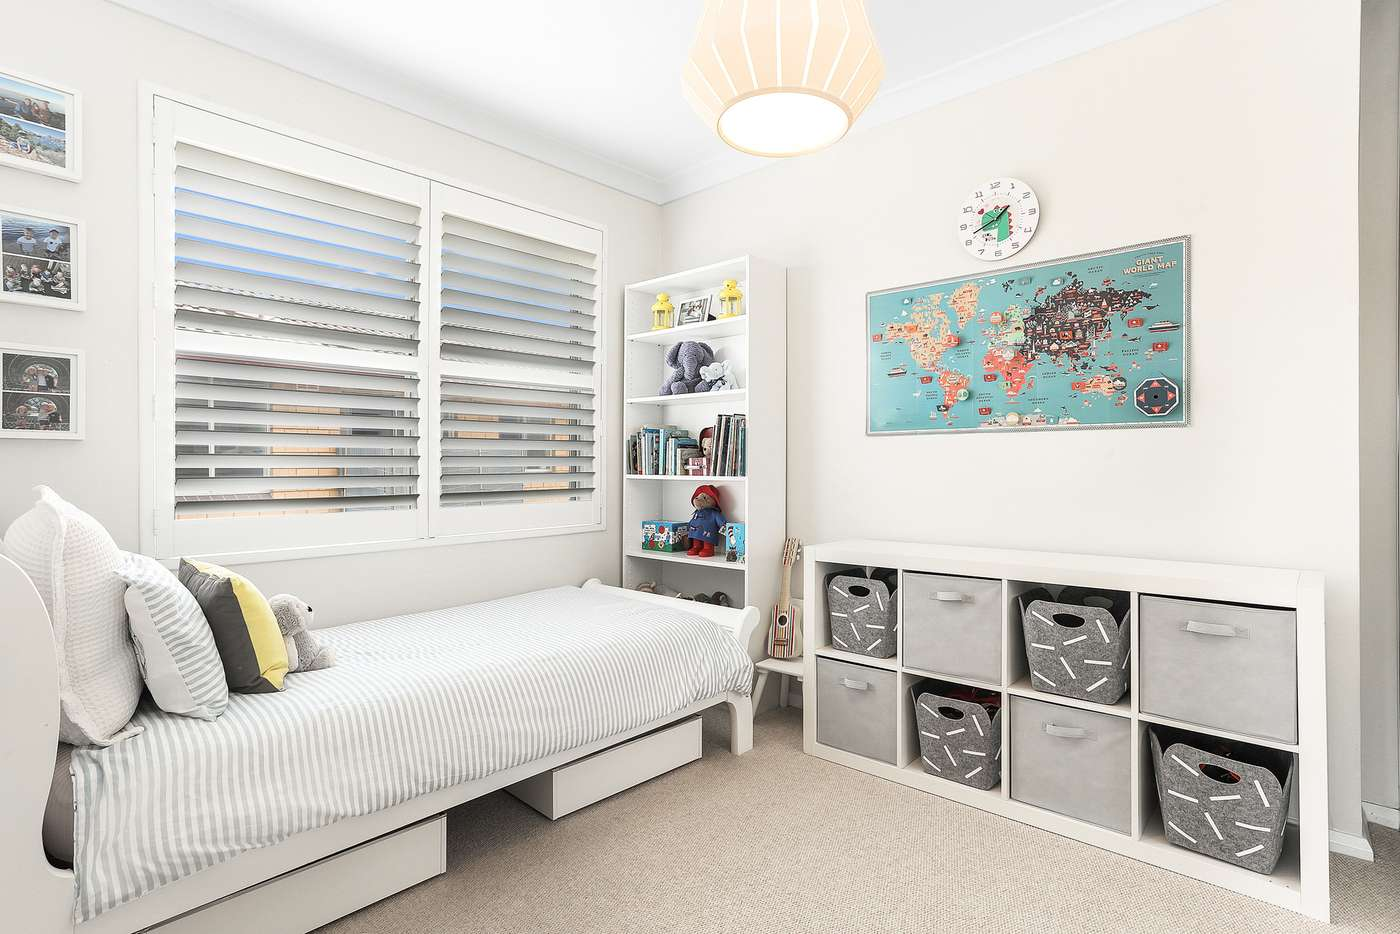 Sixth view of Homely apartment listing, 7/22 Liverpool Street, Rose Bay NSW 2029